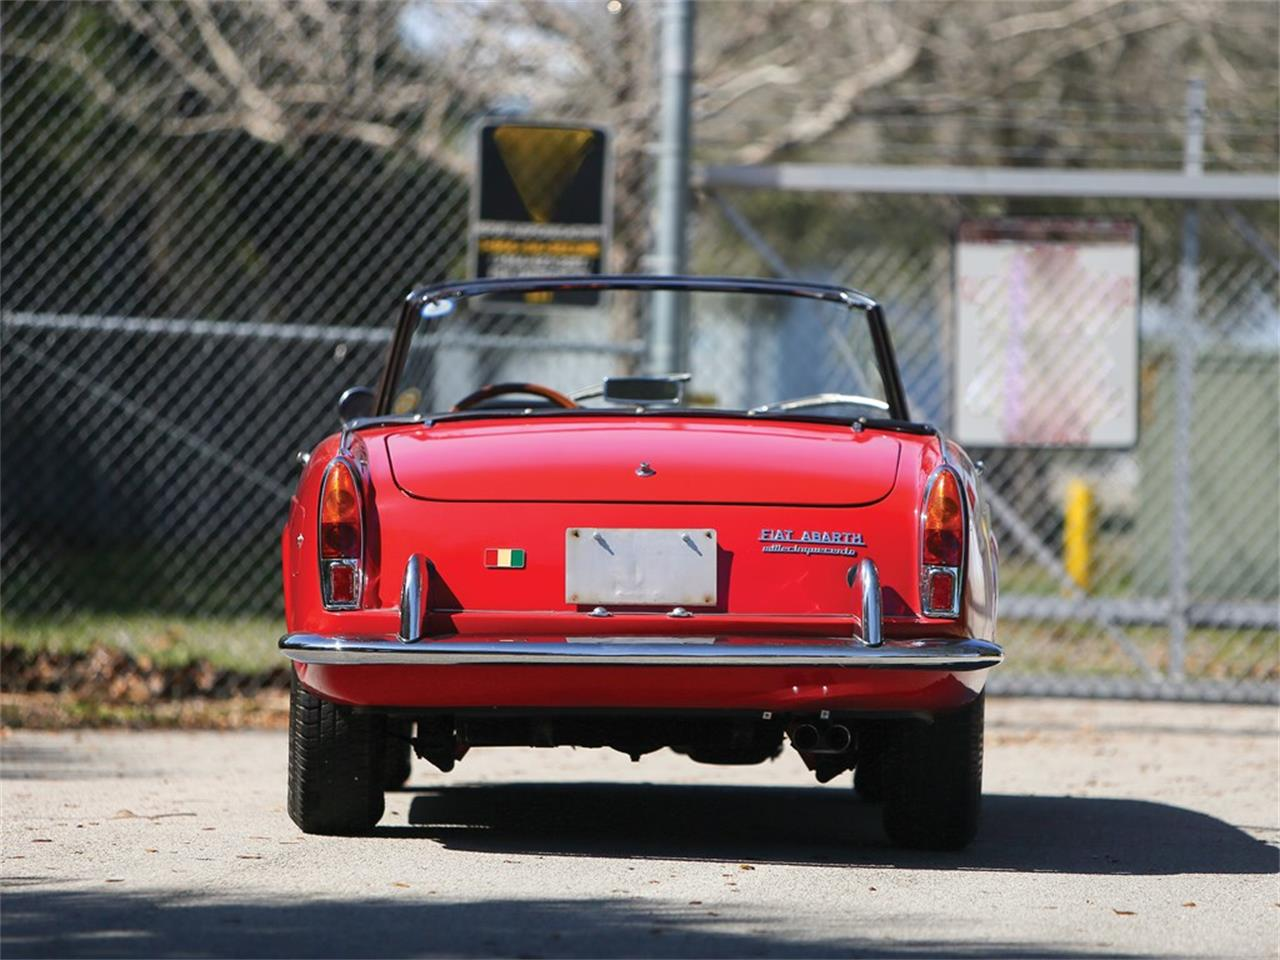 1965 Fiat Abarth 1500 for sale in Fort Lauderdale, FL – photo 10